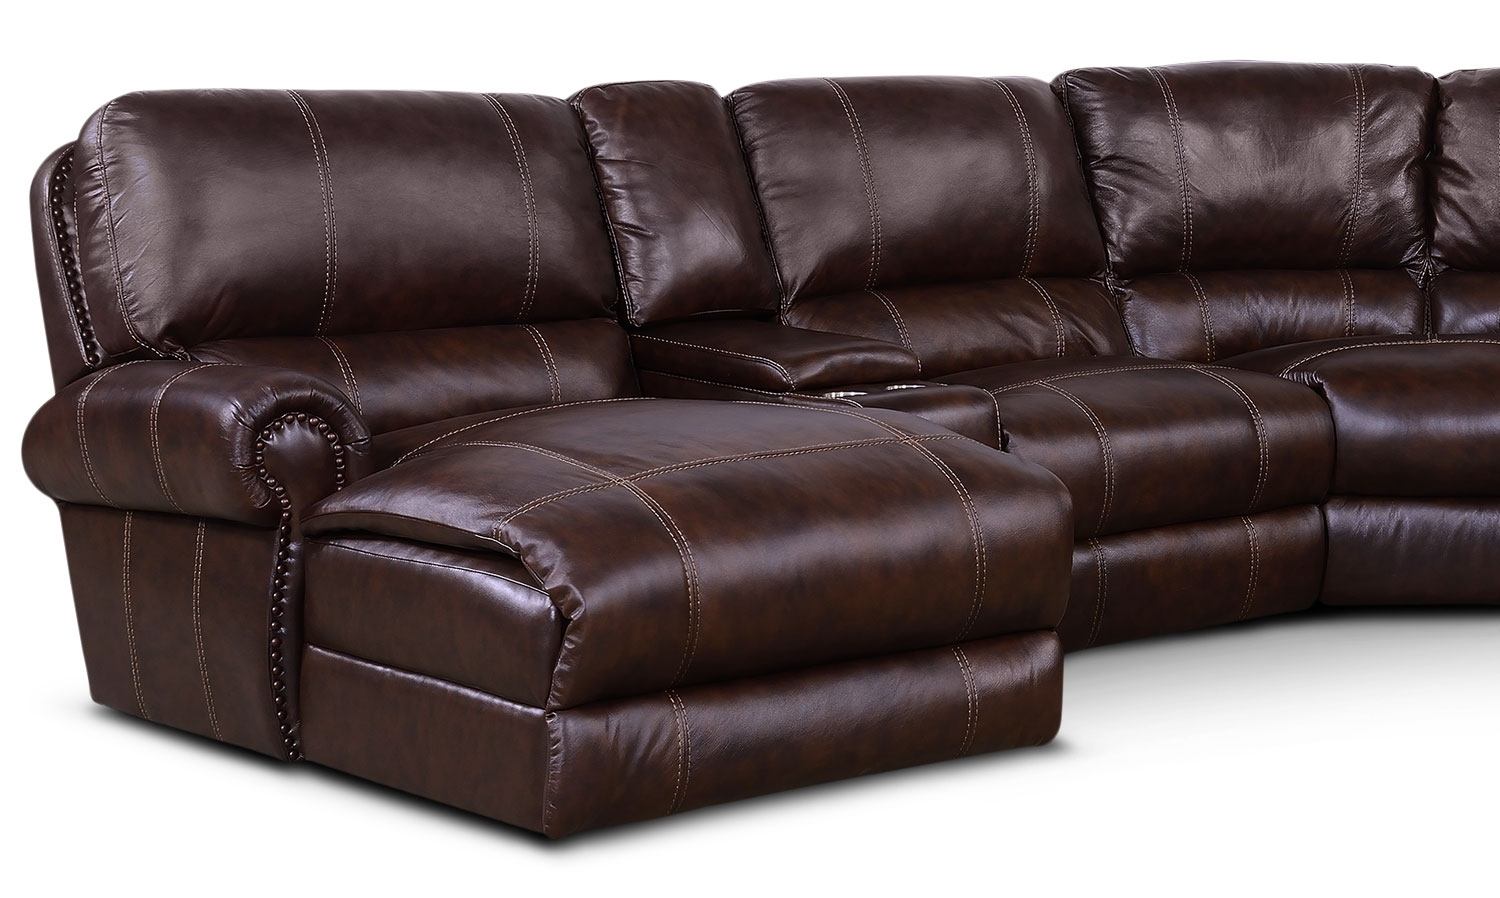 Dartmouth 6-Piece Power Reclining Sectional W/ Left-Facing Chaise regarding Norfolk Chocolate 6 Piece Sectionals With Laf Chaise (Image 9 of 30)